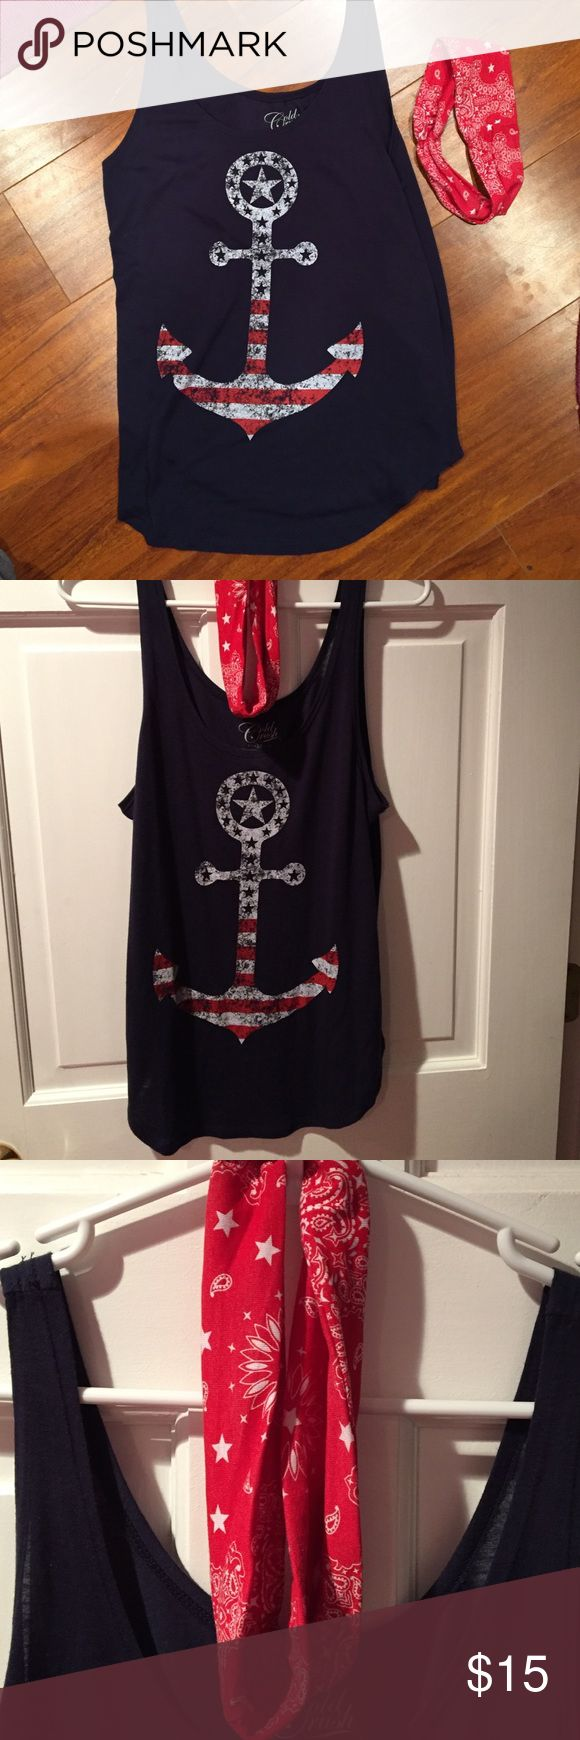 NWOT top with headband Super cute anchor ⚓️ top with matching bandanna headband or can be wrapped up like a wrist band Gold Crush Tops